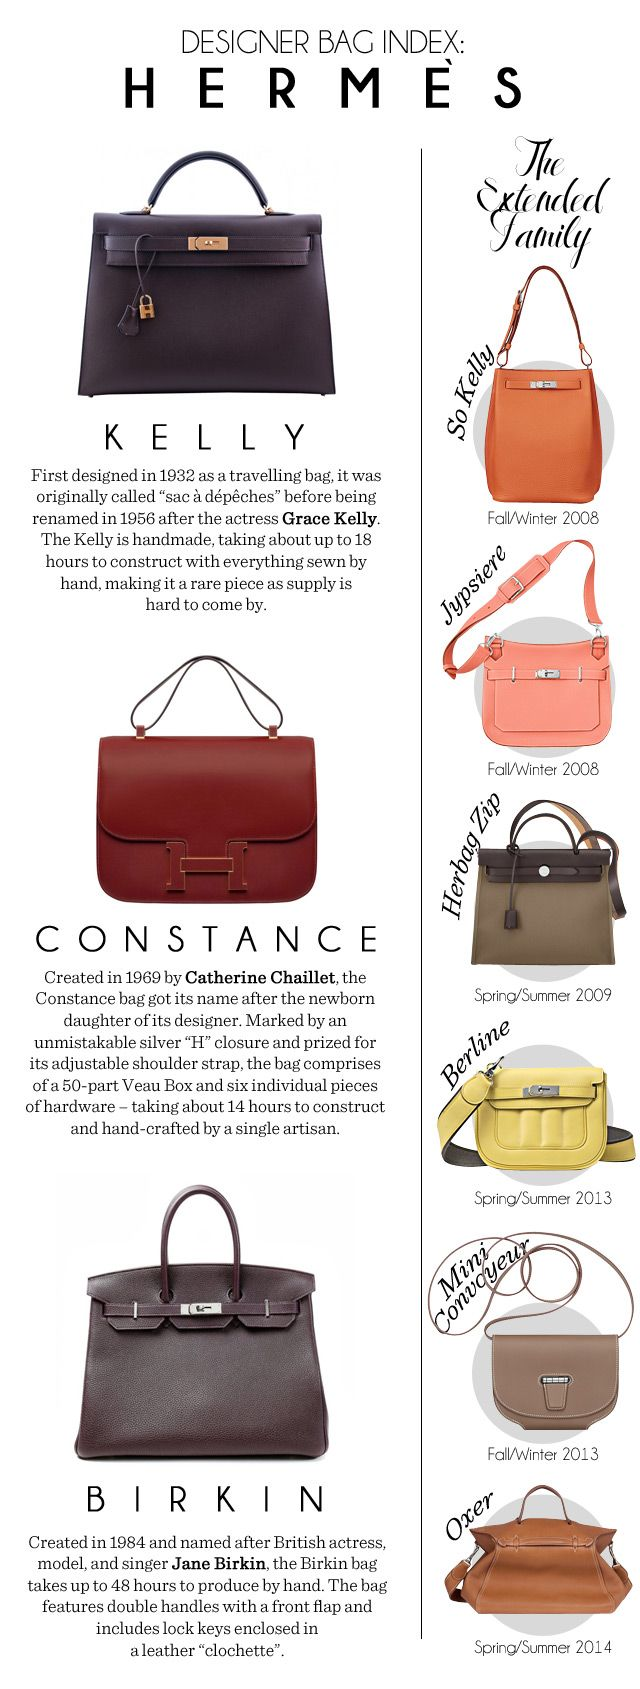 From Jane Birkin to Grace Kelly, get to know the stories behind three of Hermès' most popular pieces.